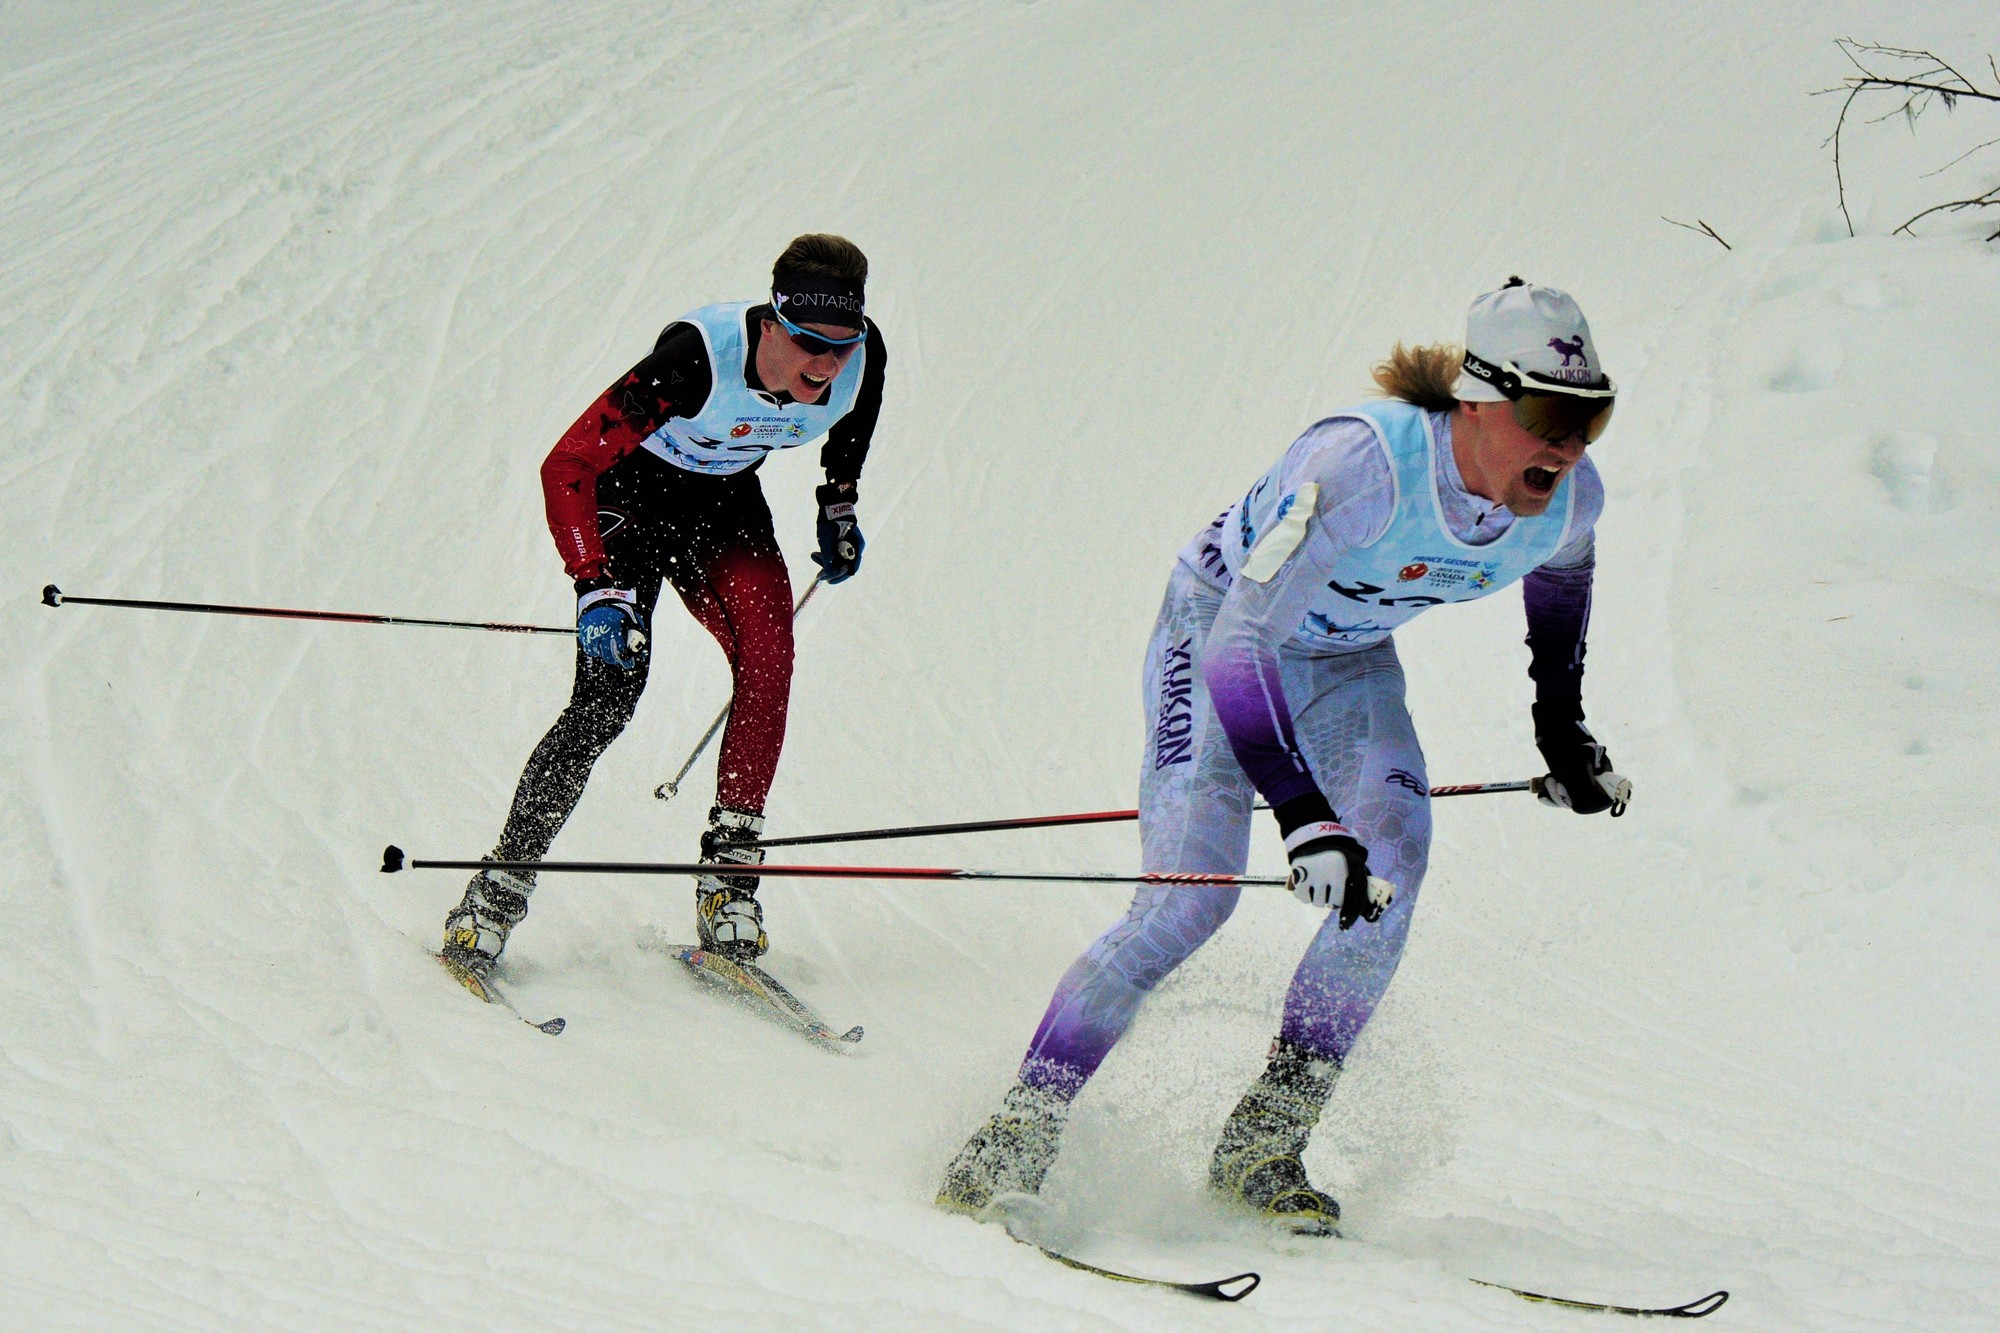 Last 200 meters of the 15 km Skate, Following Knute Johnsgaard. Photo Credit: Otway Photo's.